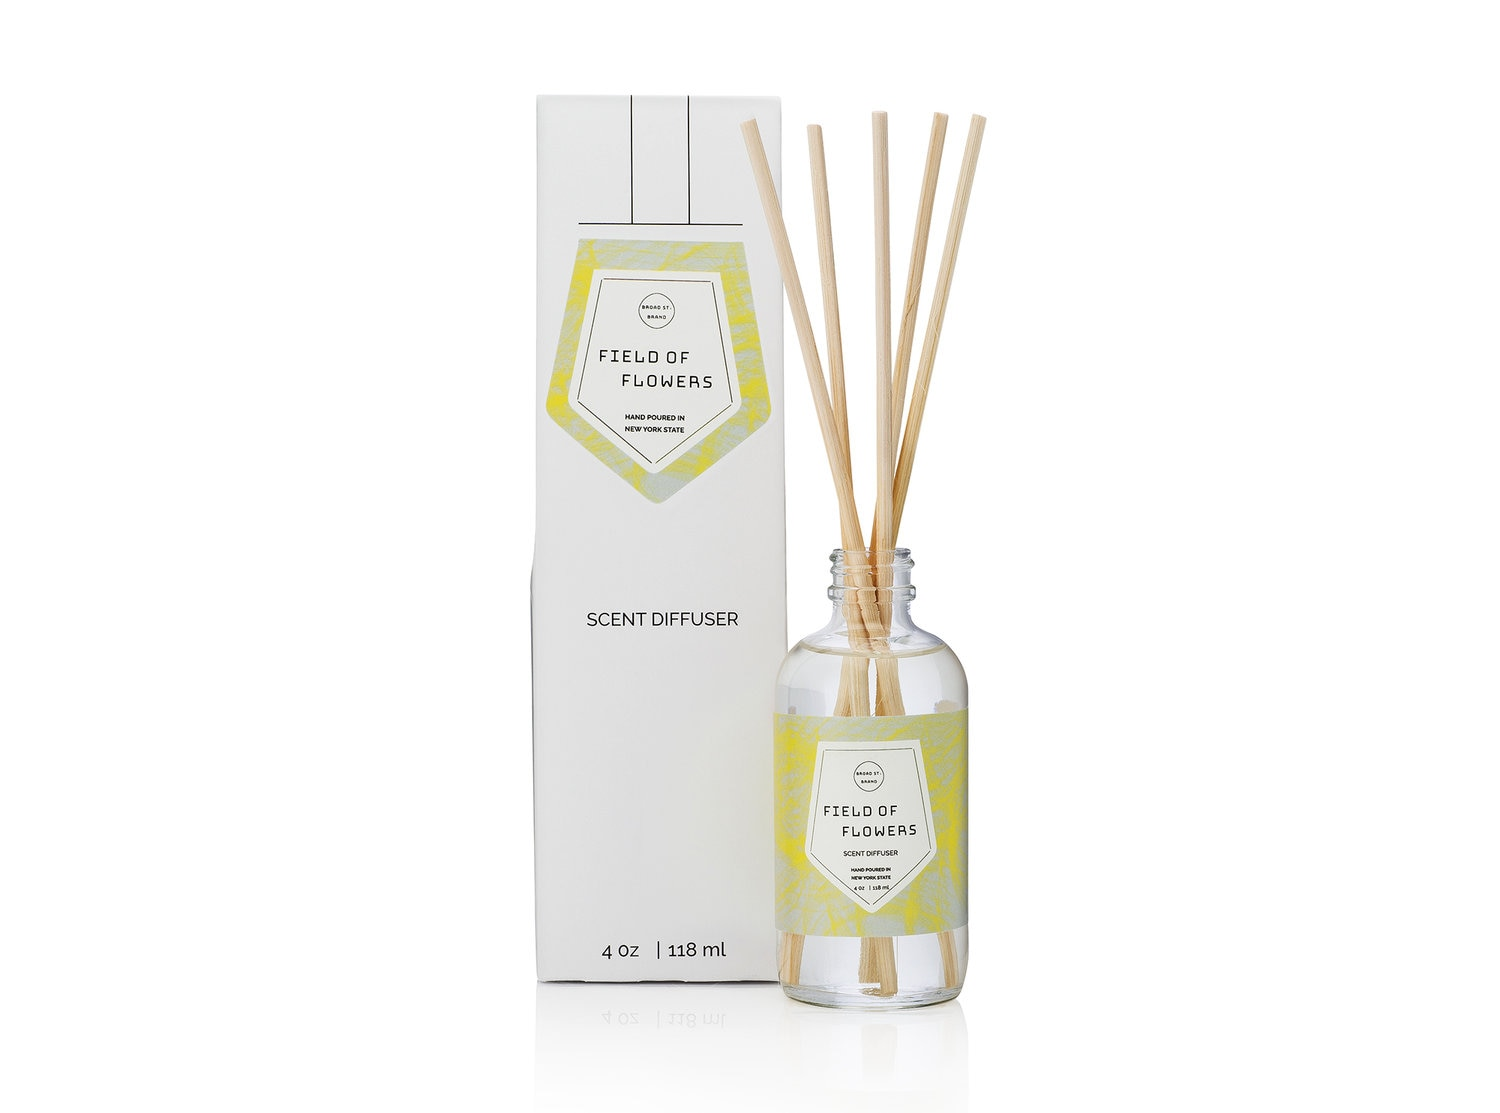 Kobo Field of Flowers Room Diffuser